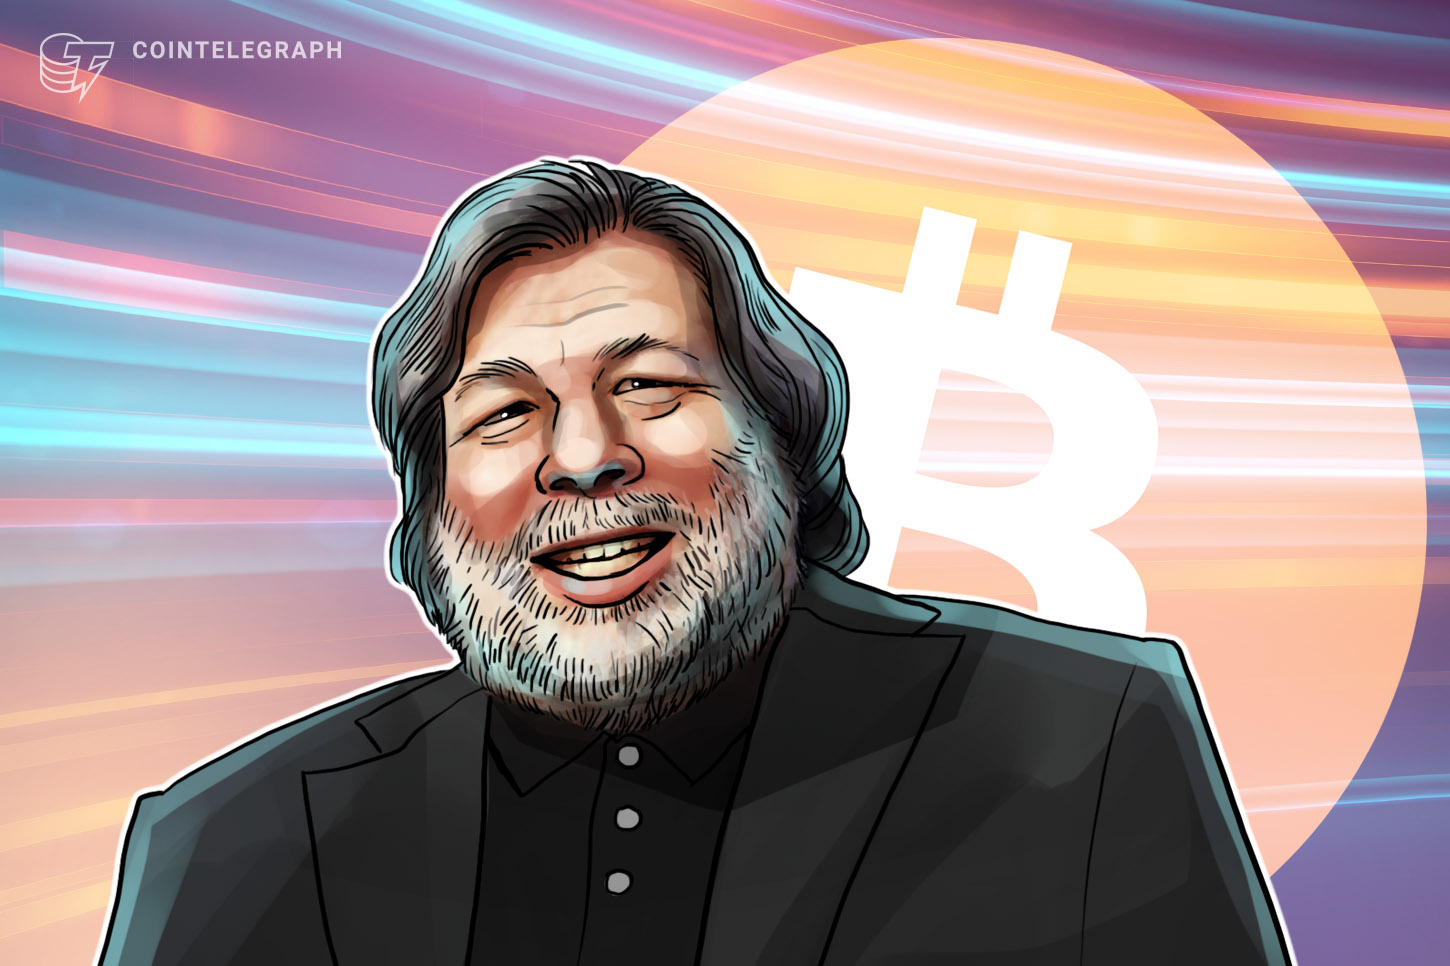 Bitcoin is a miracle and better than gold, says Apple co-founder Wozniak